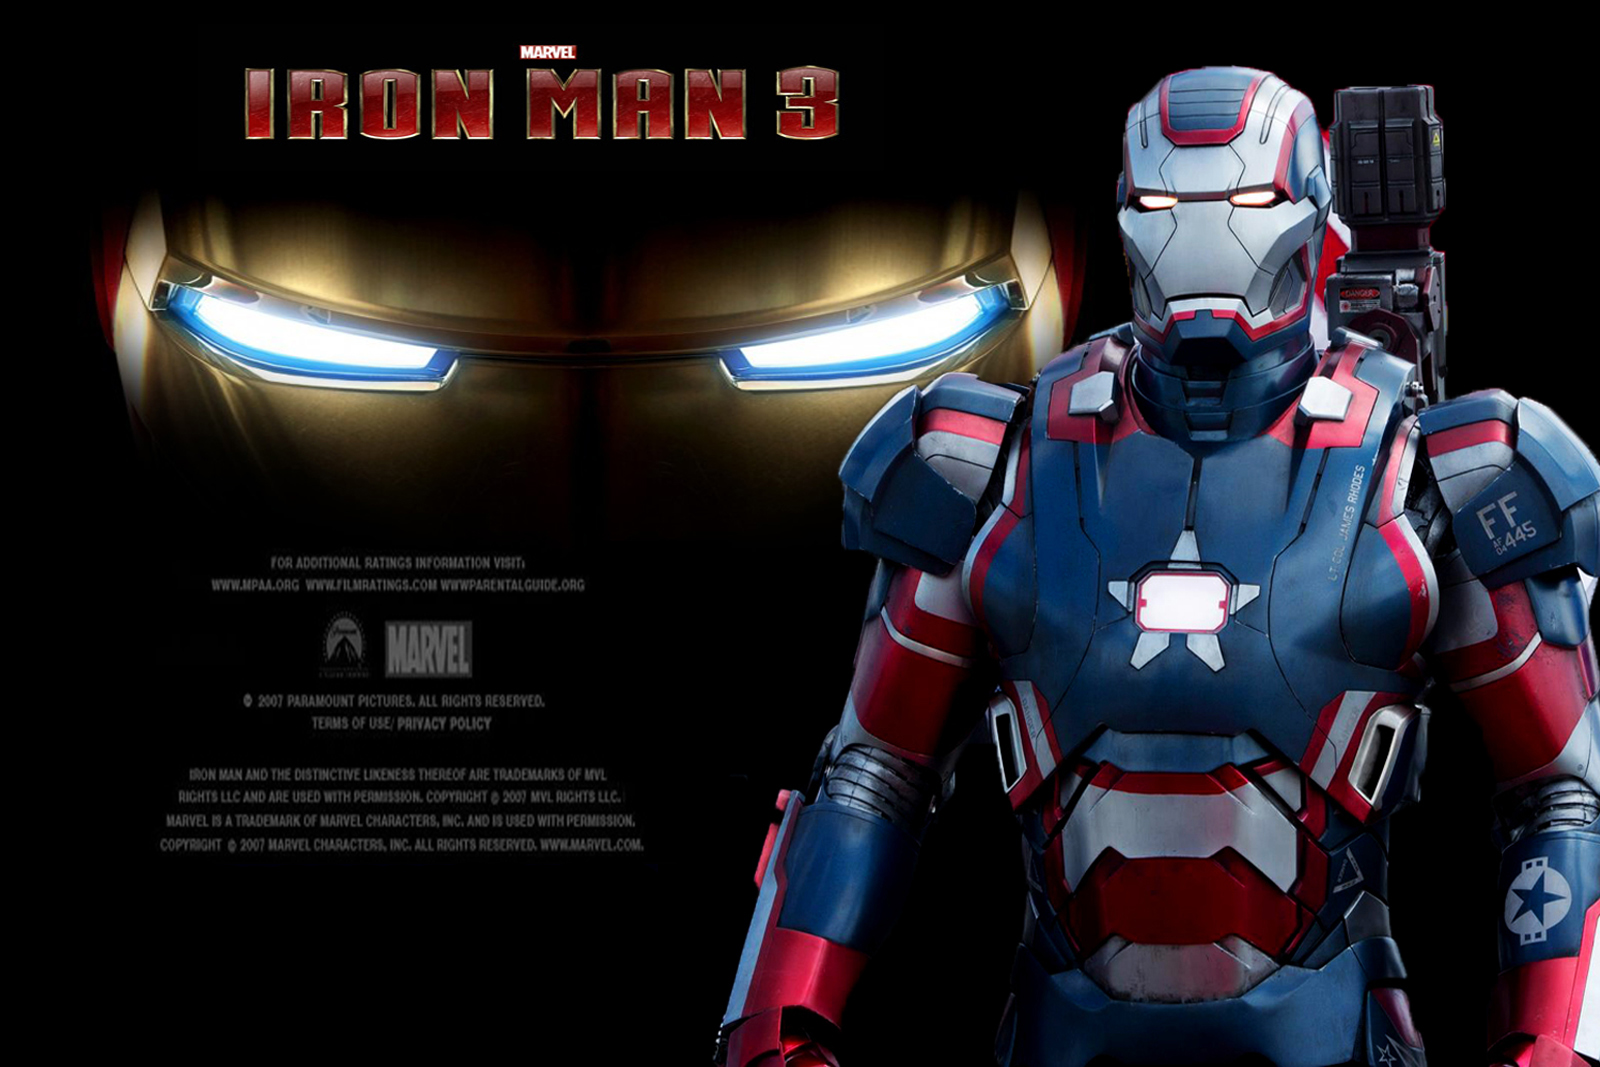 iron man 3 marvel wallpaper | movie sport wallpaper